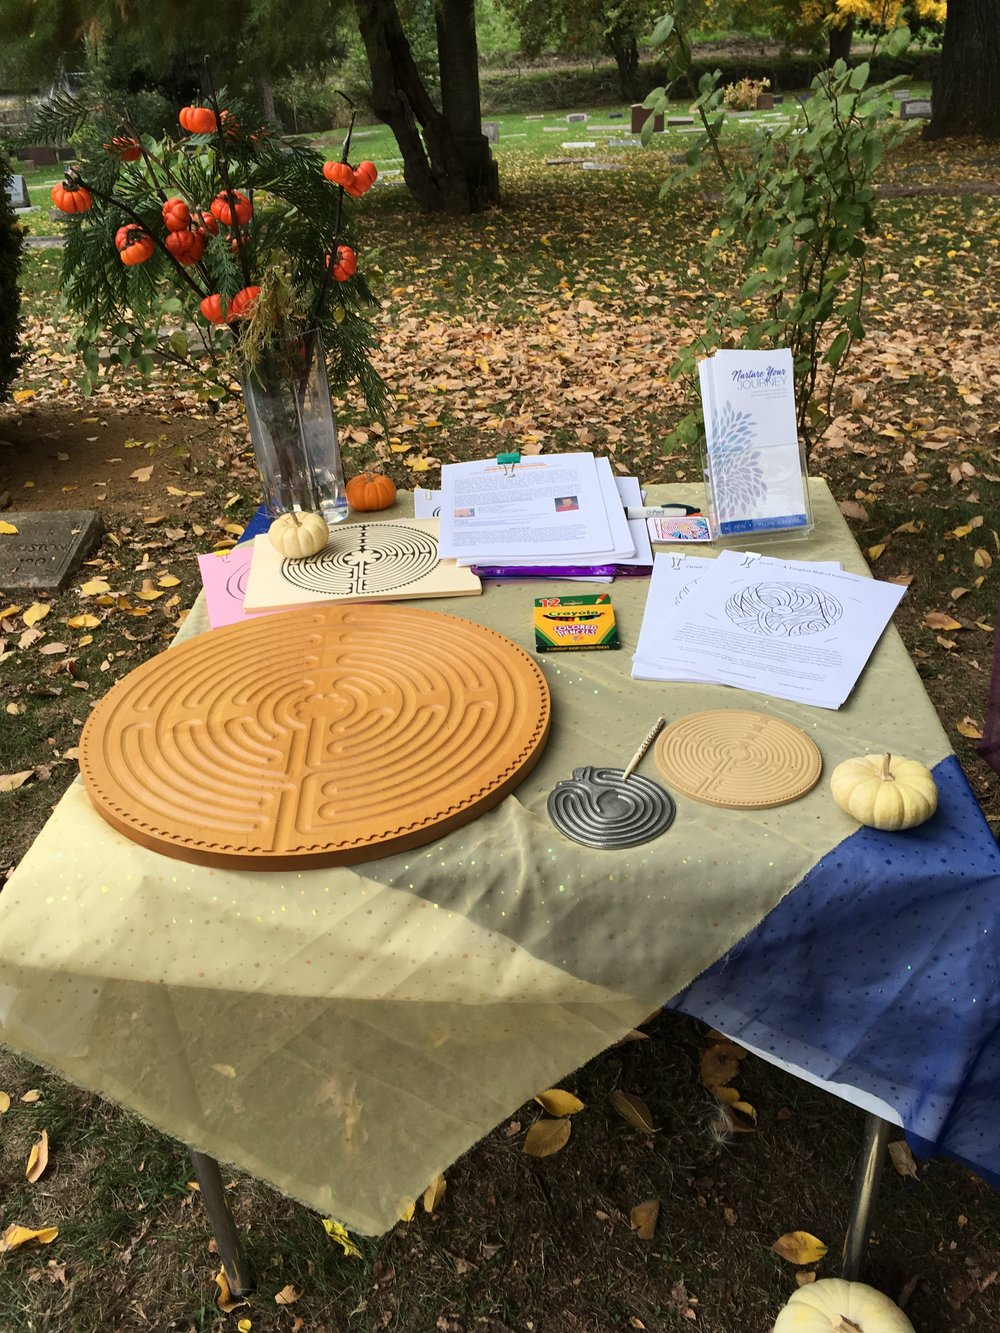 Promoting my work at the Harvest Festival